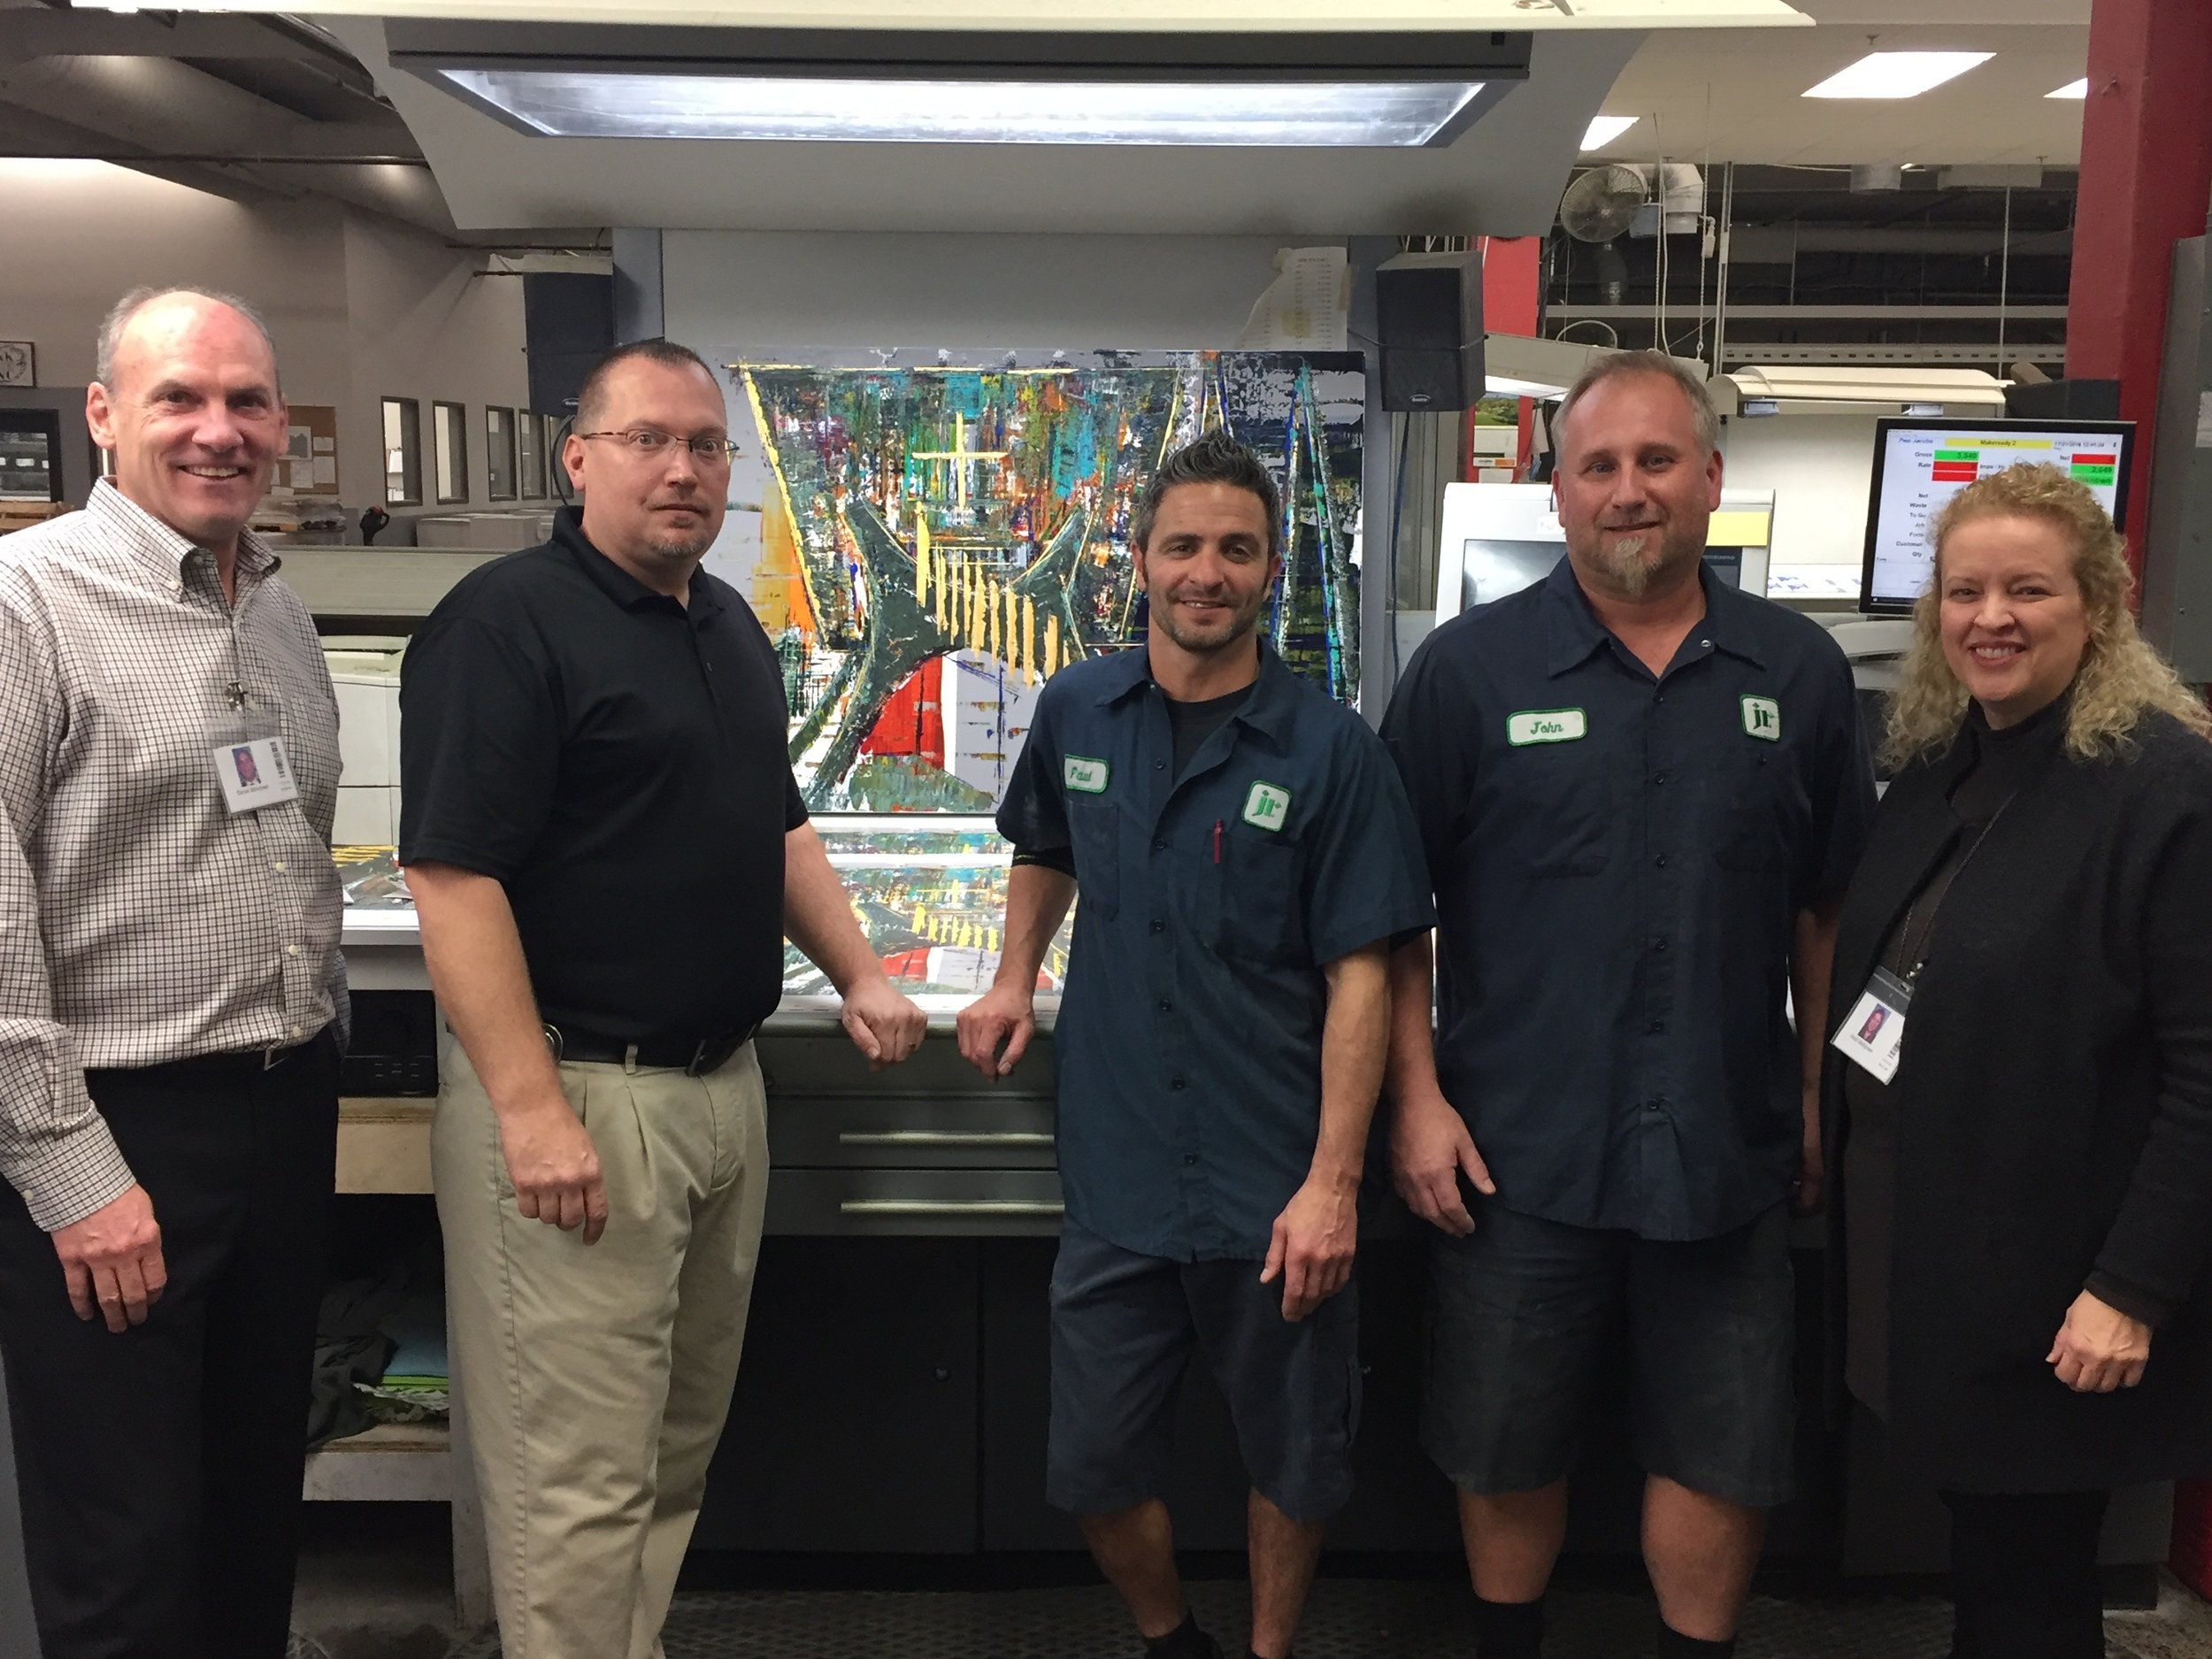 What a pleasure it was to work with the printing team at John Robert's Company.